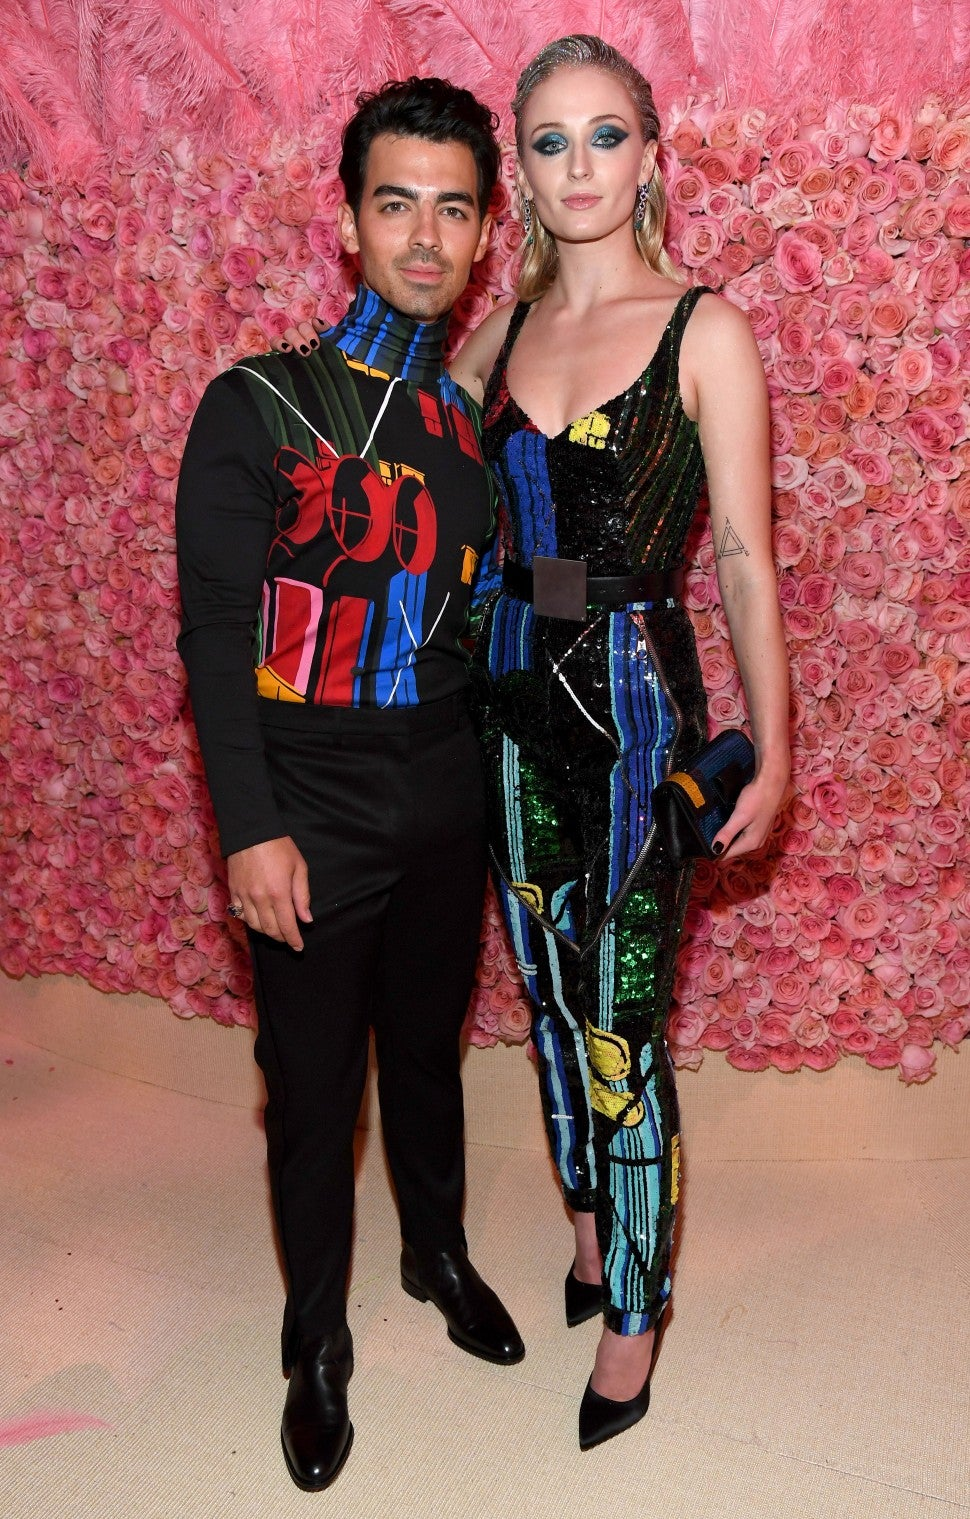 Joe Jonas and Sophie Turner at the 2019 Met Gala - cocktails